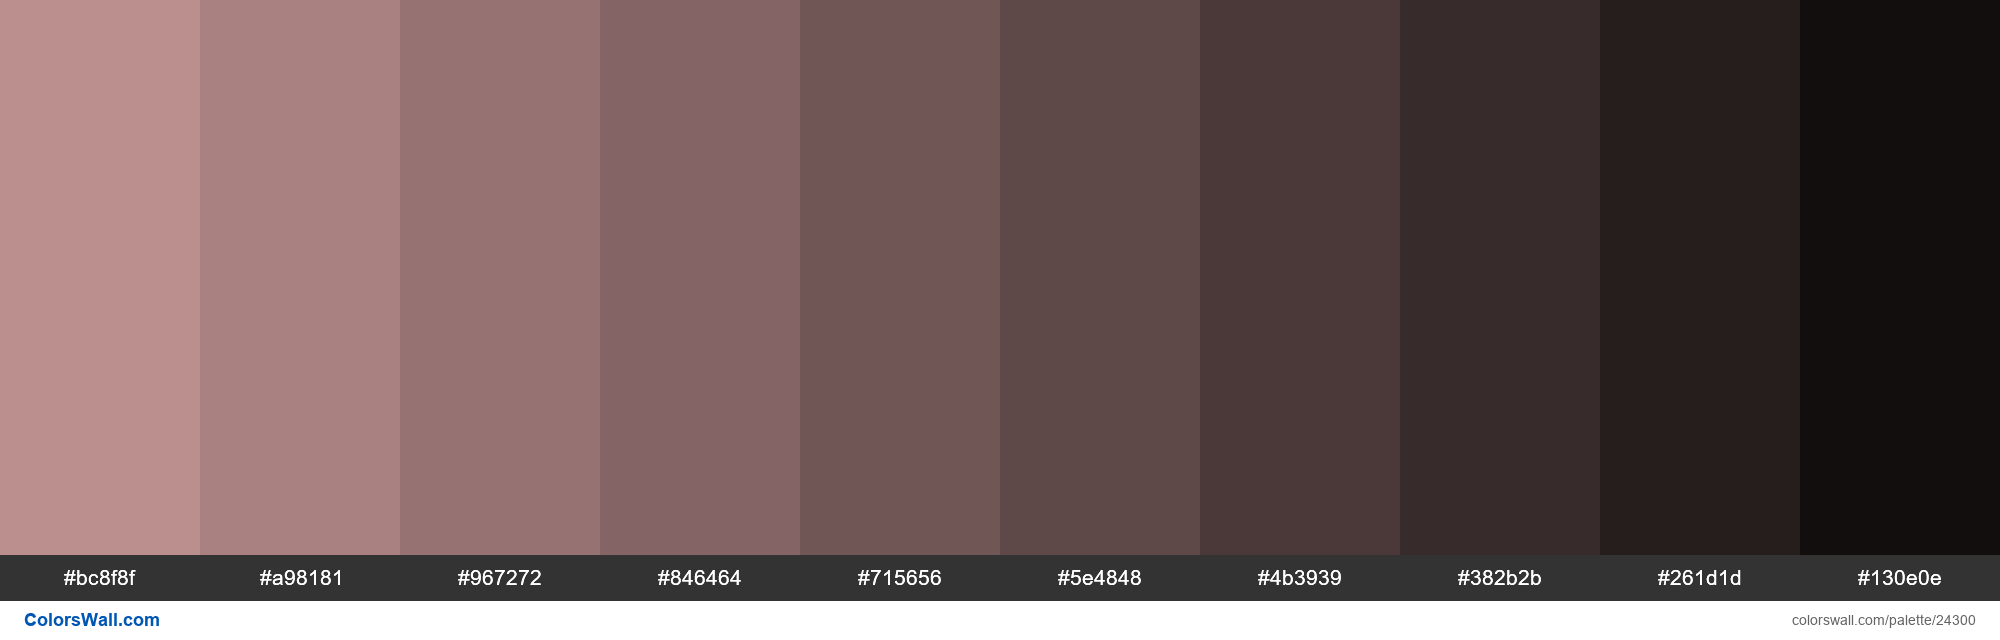 Shades of Rosy Brown #BC8F8F hex color - #24300